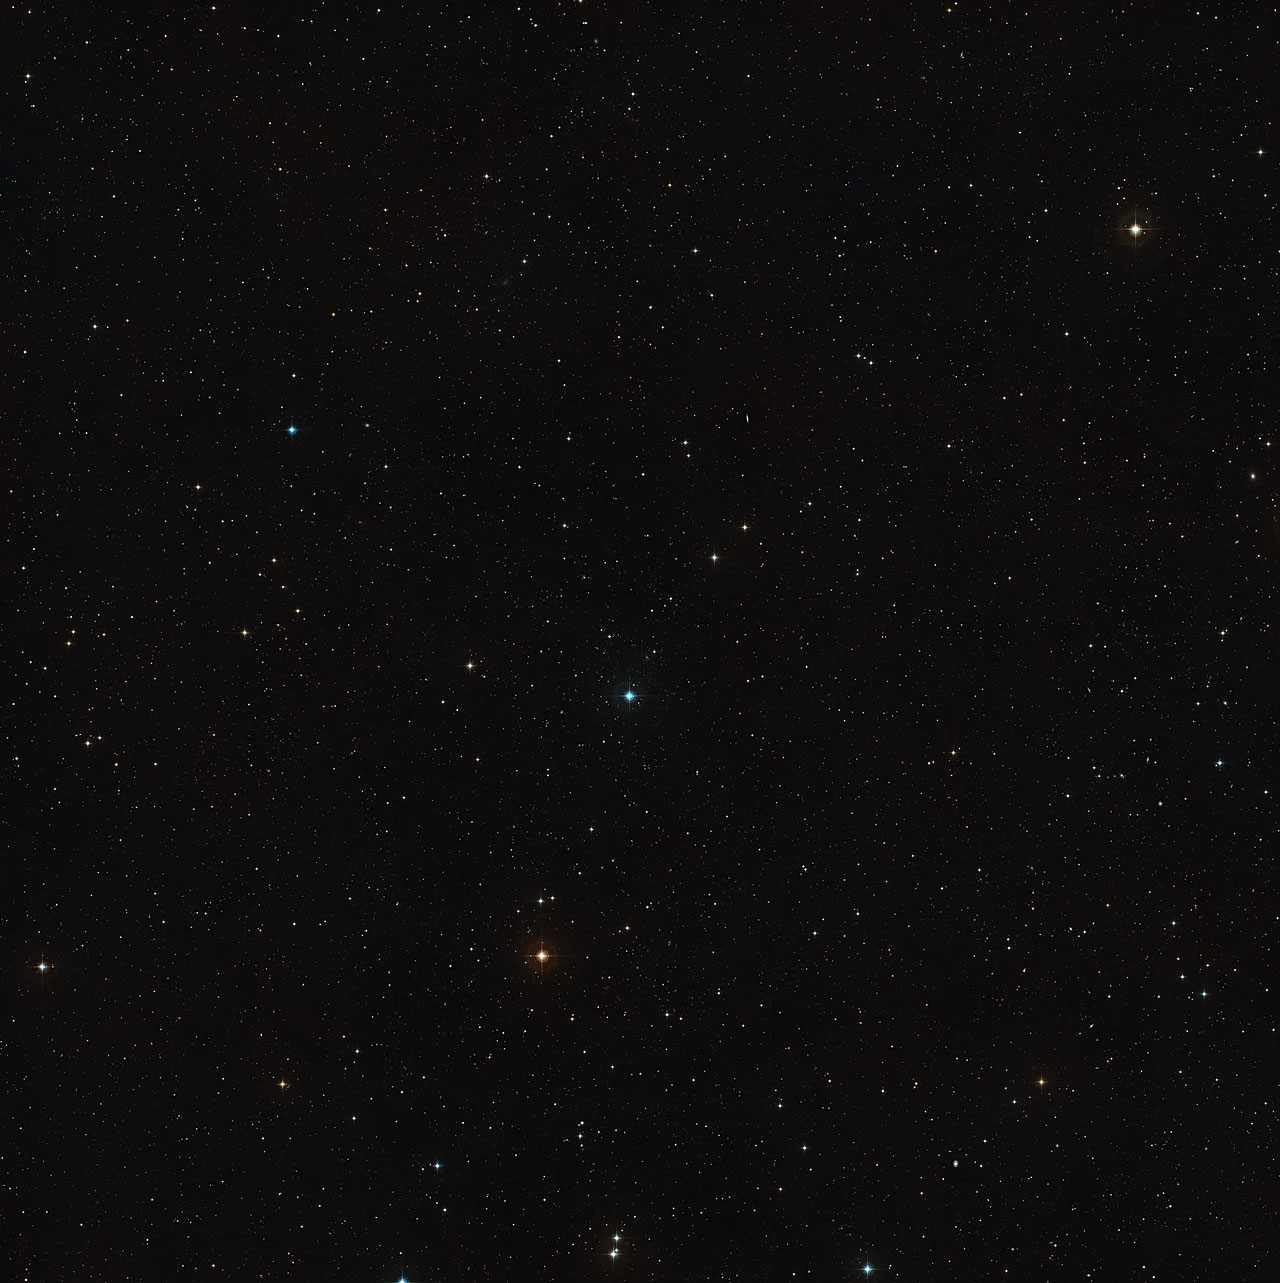 Wide field view of Abell 383 (ground-based image)